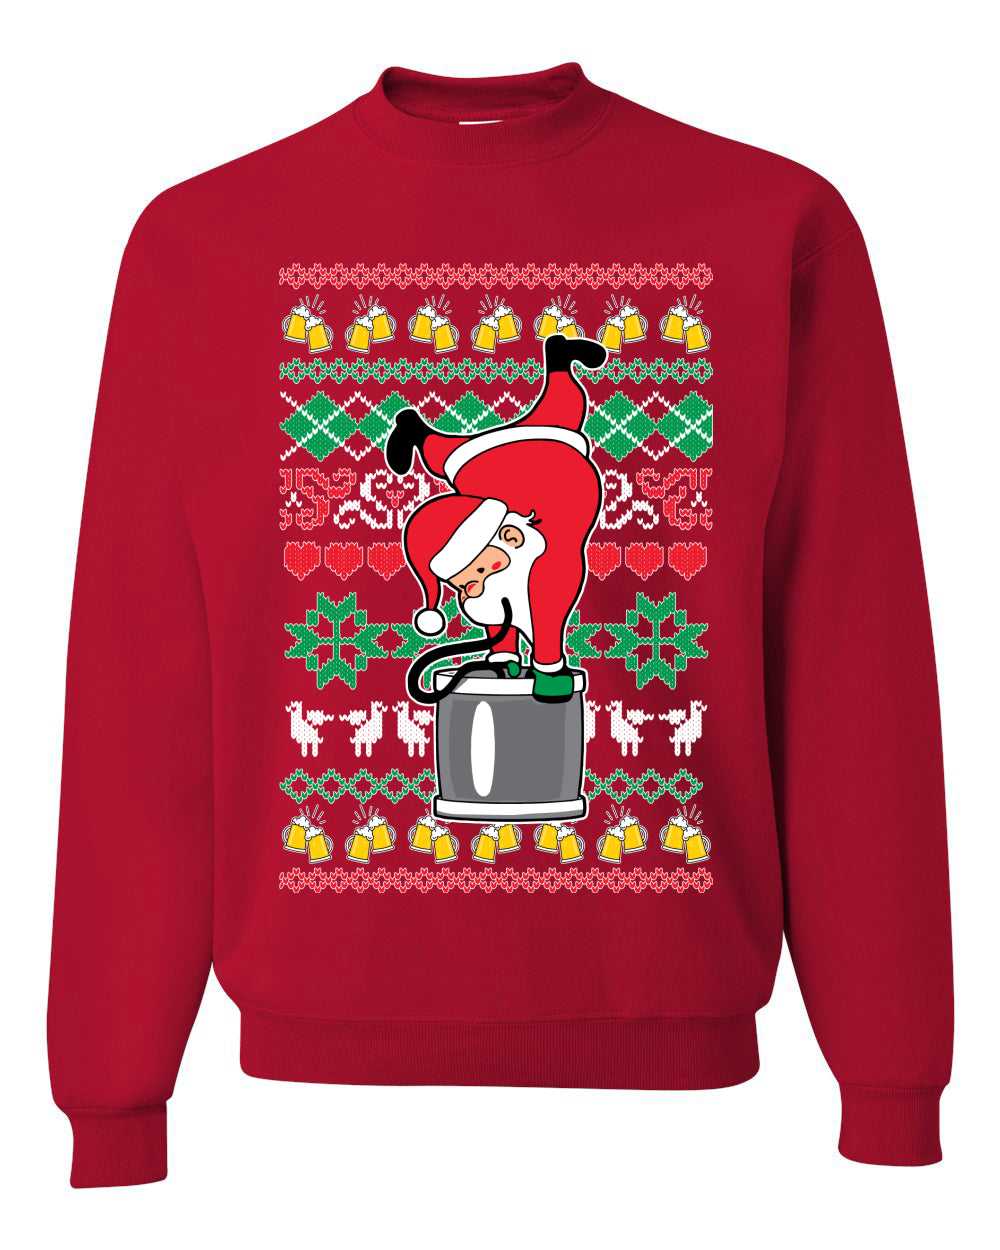 Santa Keg Stand Beer Drinking Drunk Ugly Christmas Sweater Christmas Unisex Crewneck Graphic Sweatshirt